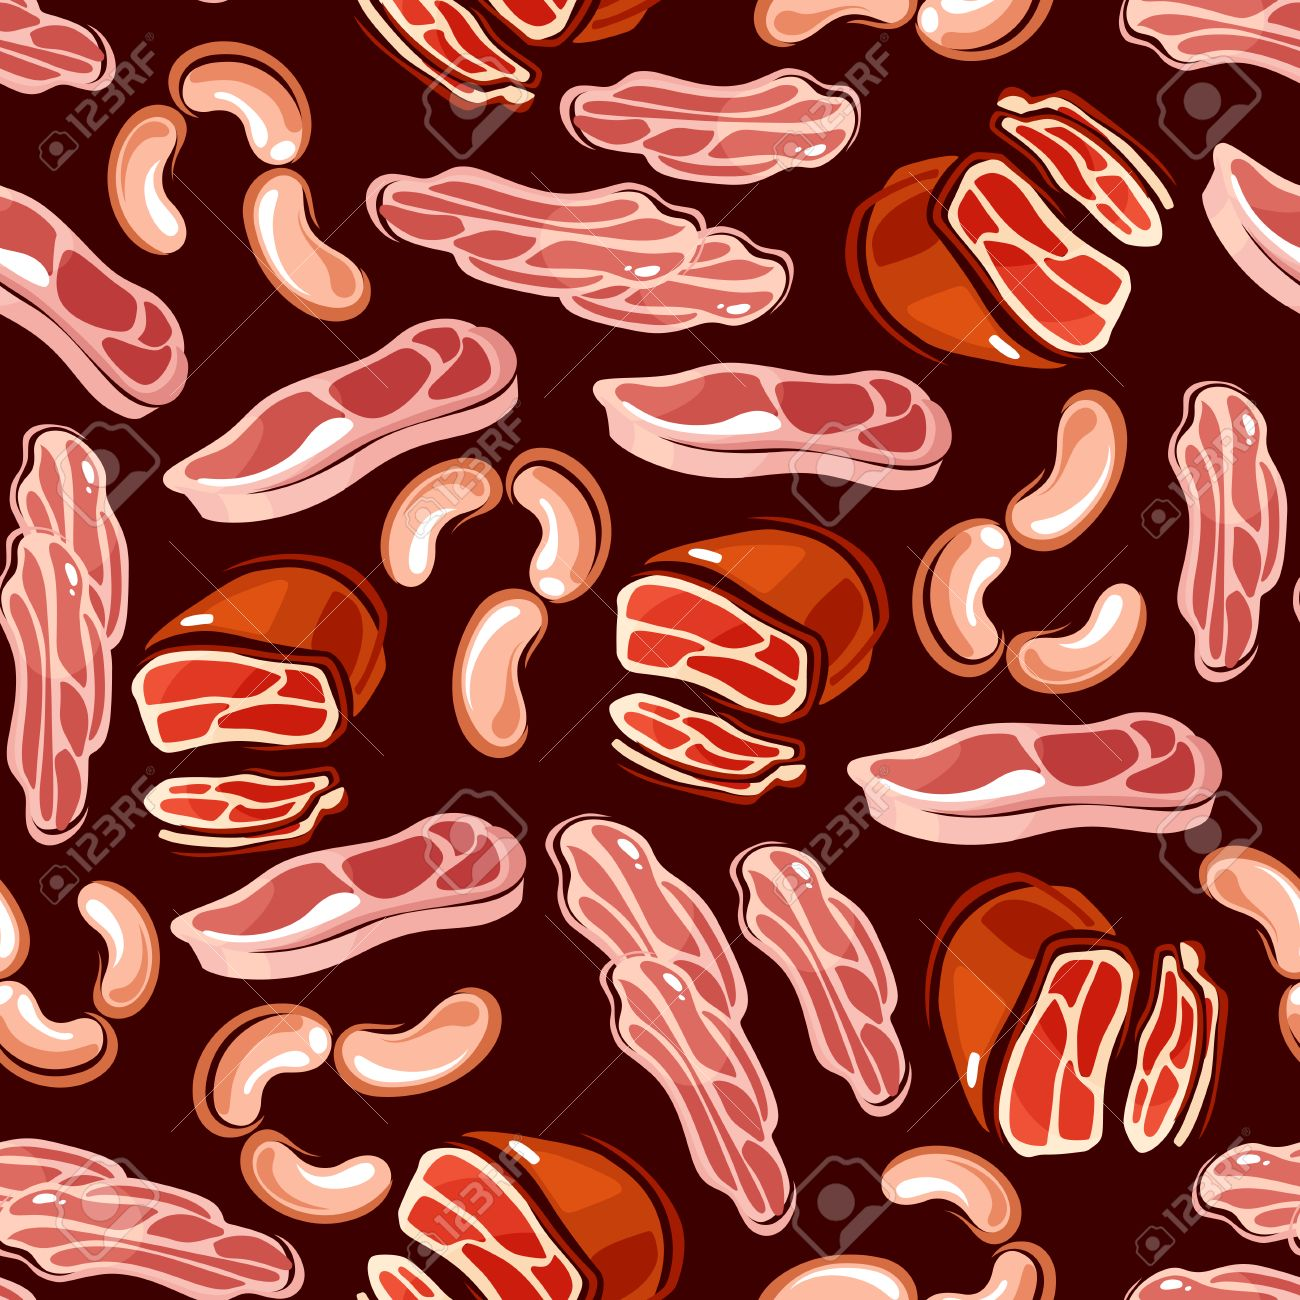 Sausages And Bacon Slices Seamless Background Wallpaper With 1300x1300